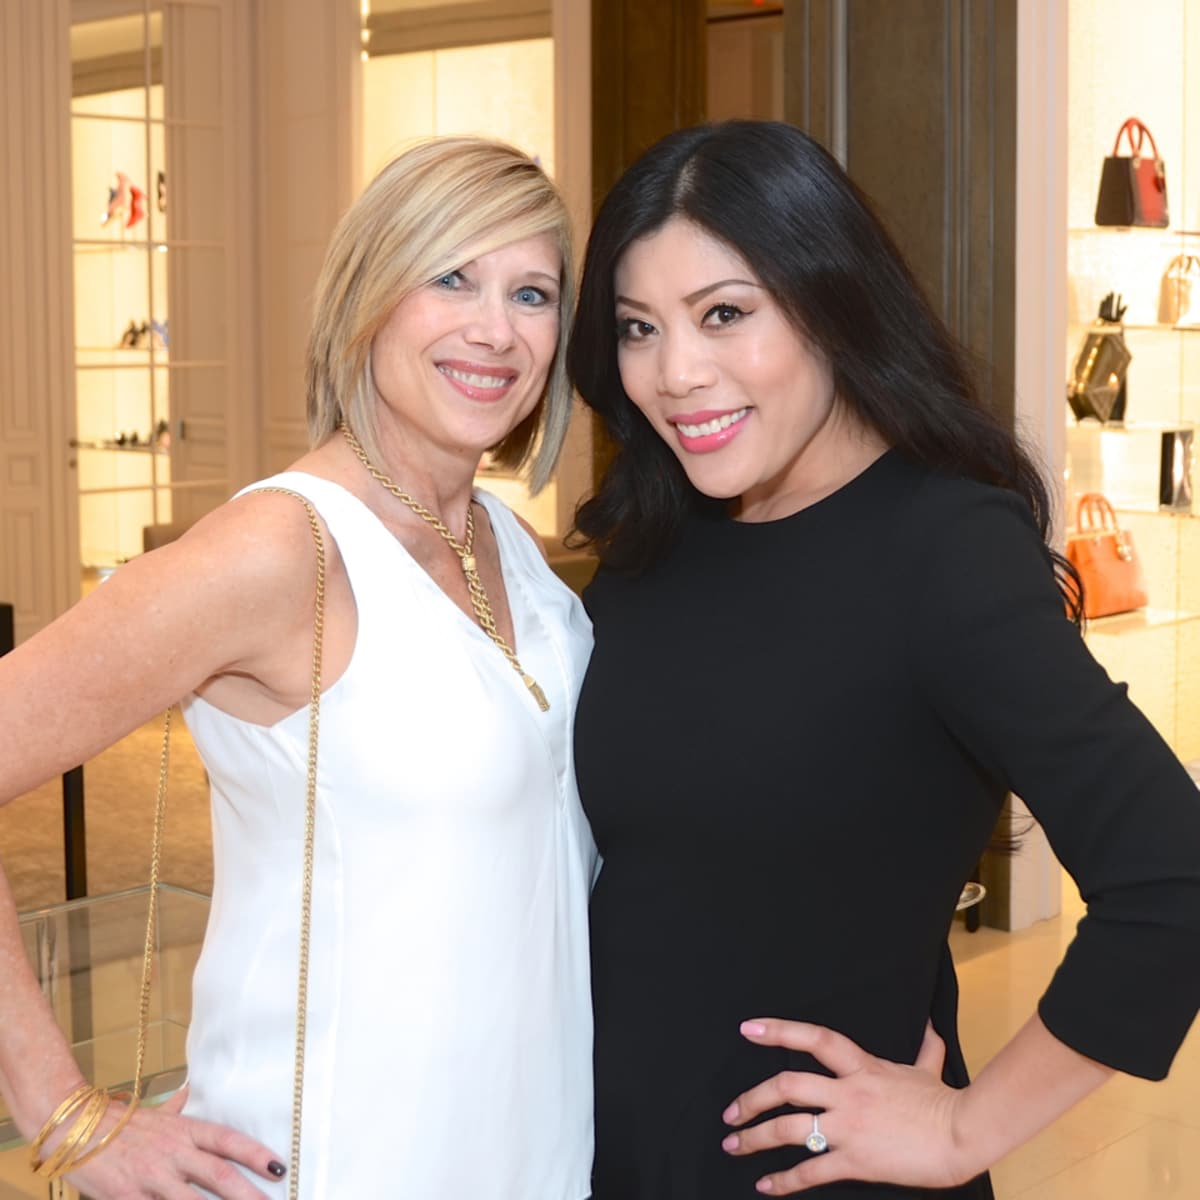 Dior grand opening Leslie Ezell, Mia Yu